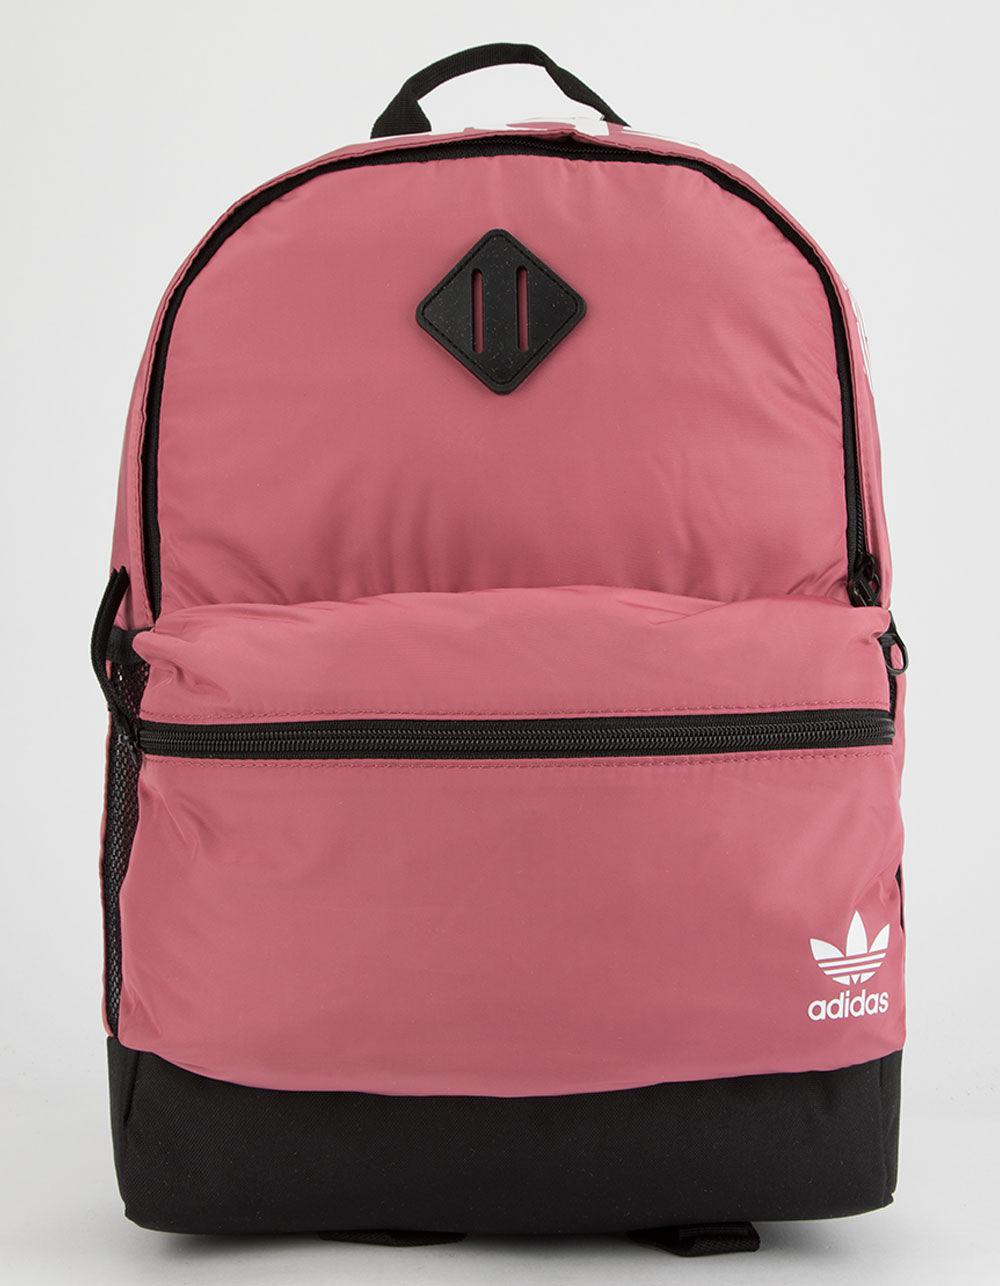 99109829430c Lyst - adidas Originals National Pink Backpack in Pink